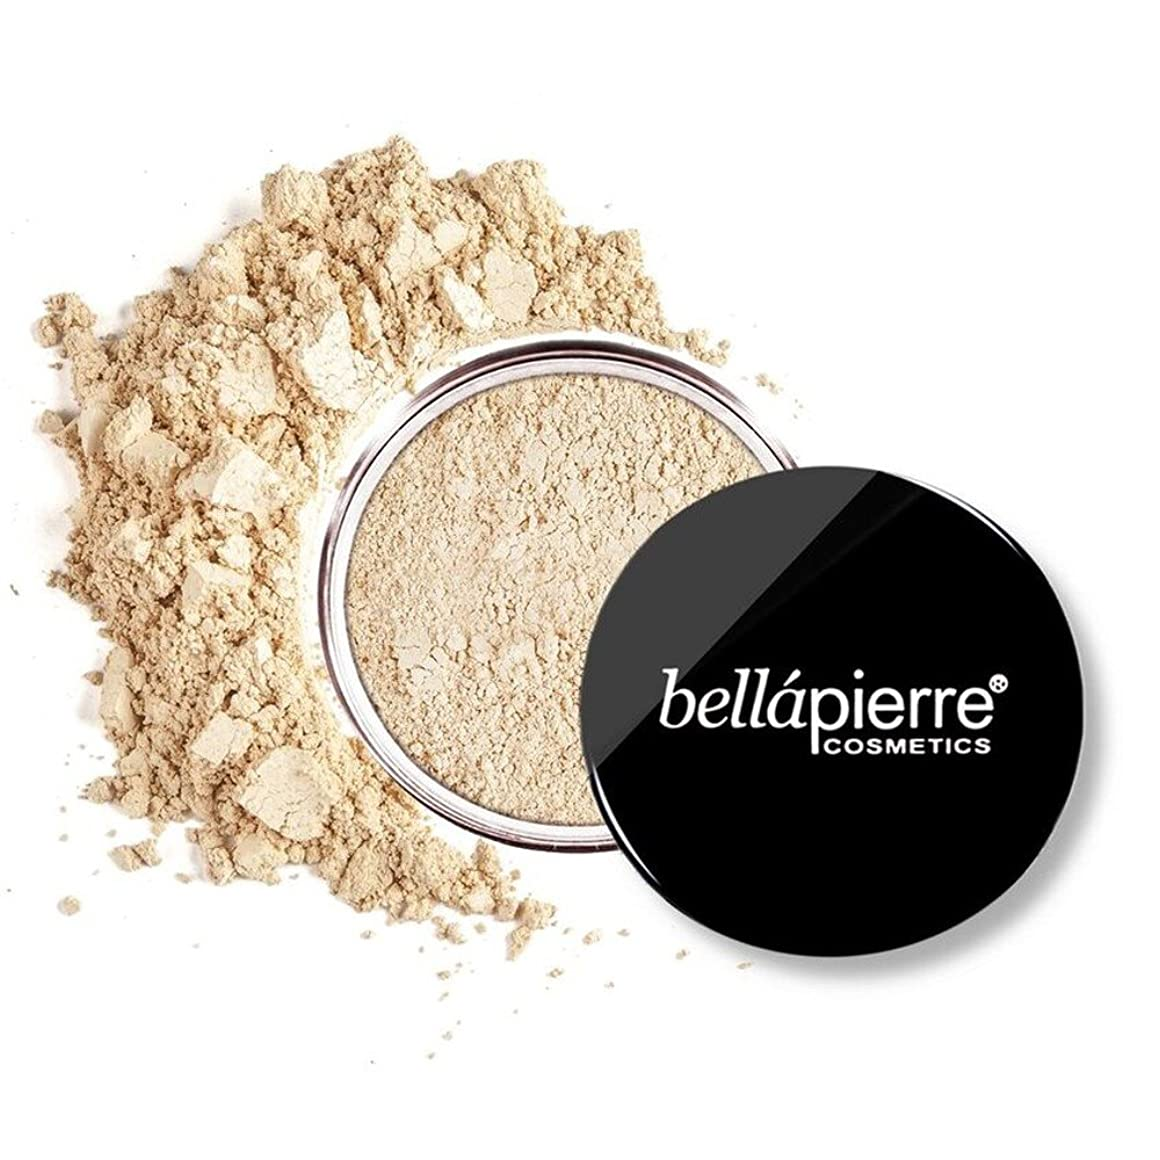 窒素慈善原子炉Bellapierre Cosmetics Mineral Foundation SPF 15 - # Ultra 9g/0.32oz並行輸入品